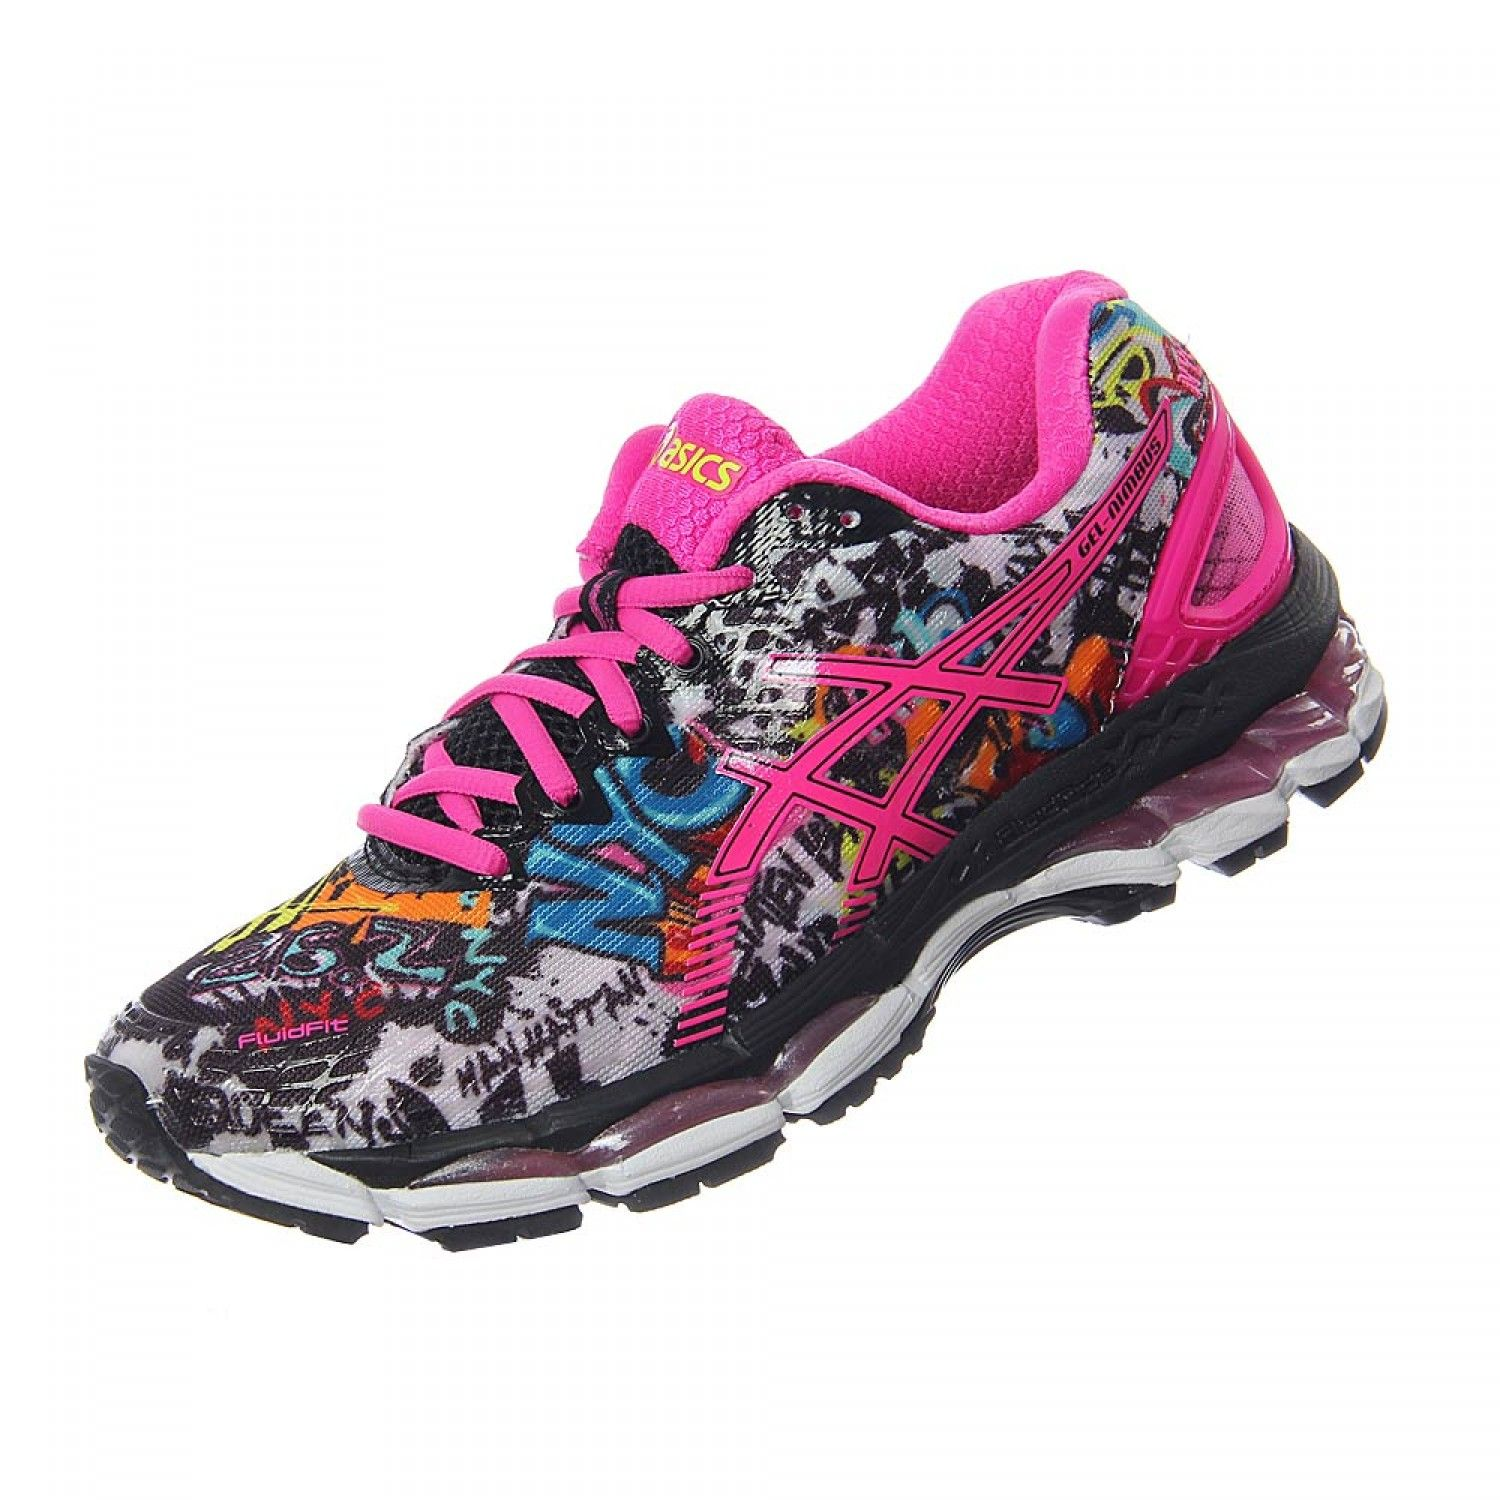 Zapatillas asics running 2014 zapatillas running asics gel - Running Shoes Asics Gel Nimbus 17 Nyc Mujer Innovasport